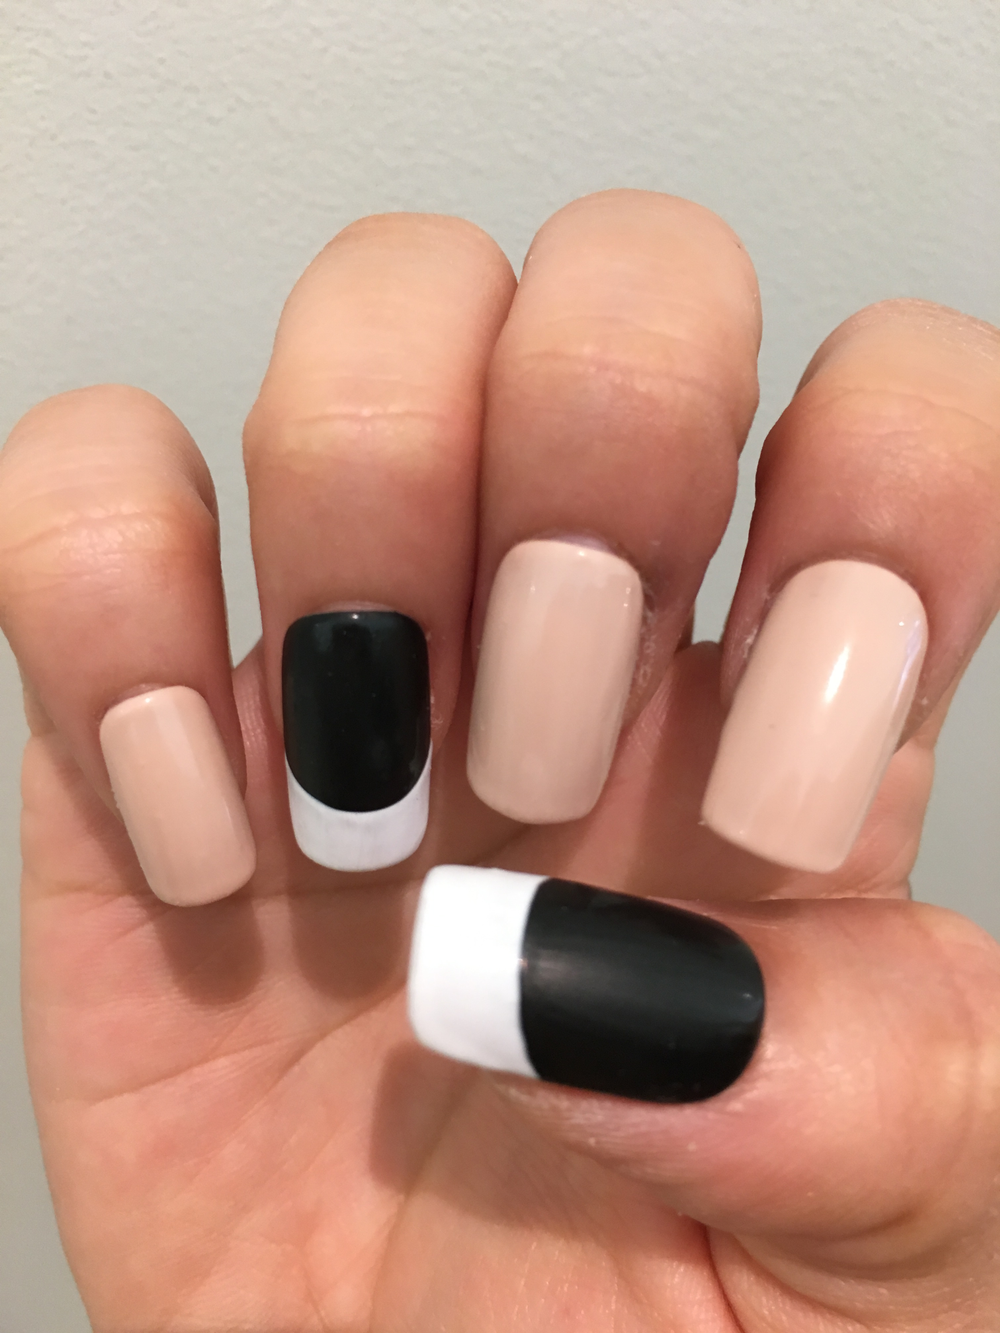 First apply base coat. Then, apply light beige polish on index, middle and pinky, and apply black polish on thumb and ring finger. Draw French line with white on thumb and ring finger.